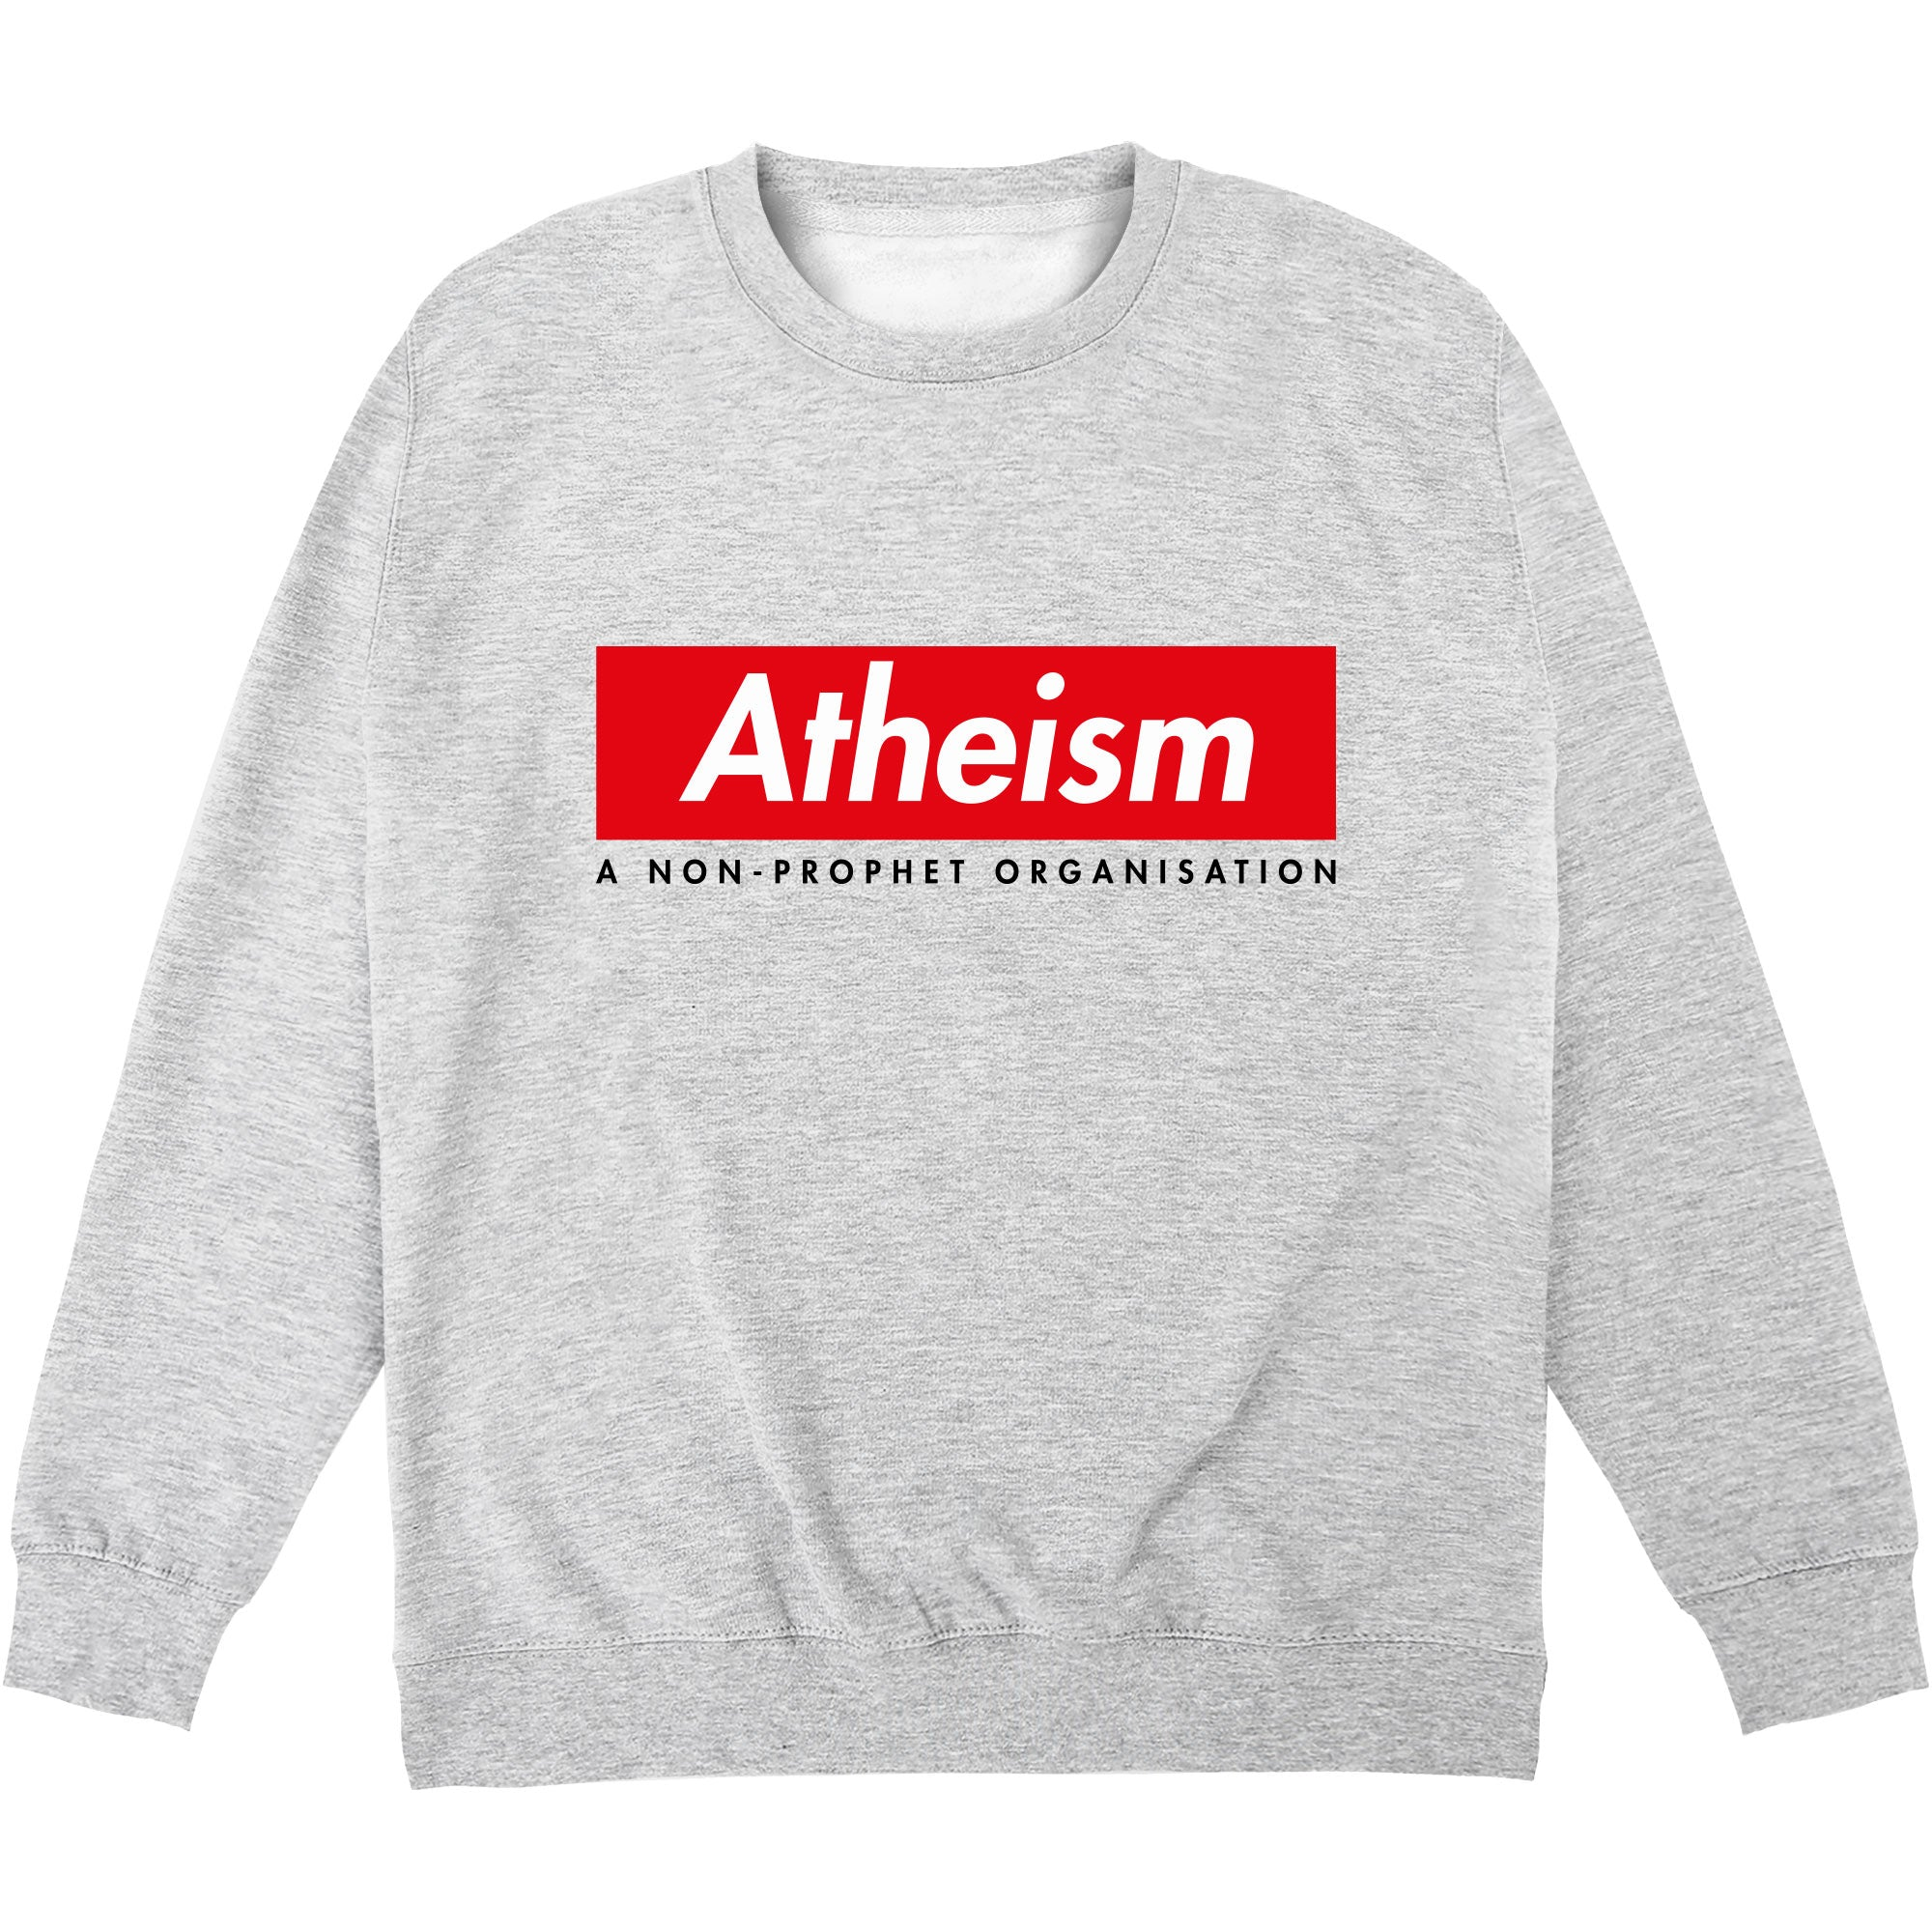 CHEAP Atheism Sweatshirt 24322675757 – Clothing Accessories